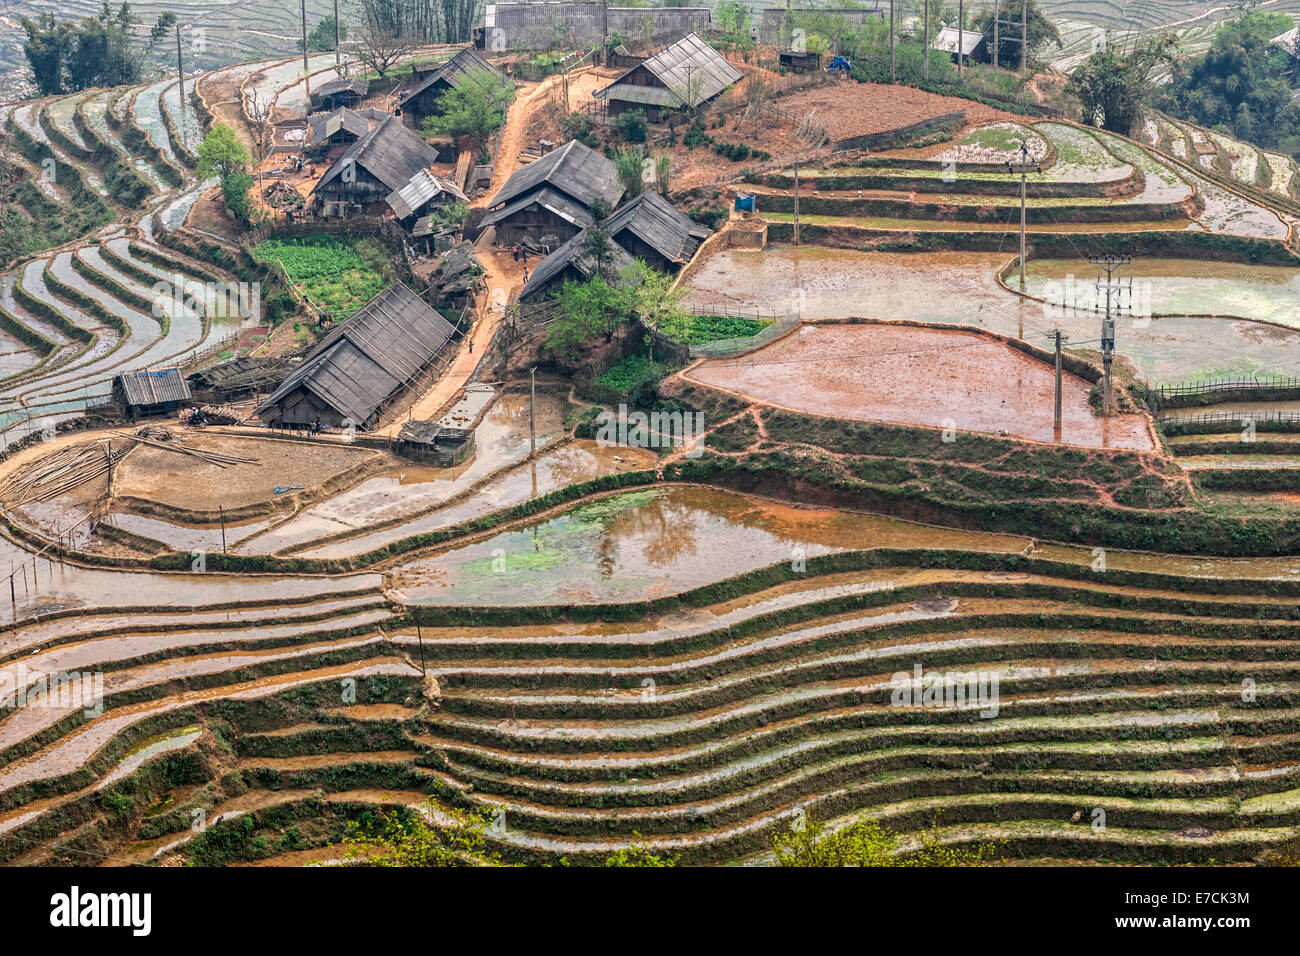 Hmong farms surrounded by submerged rice paddies in late winter. - Stock Image